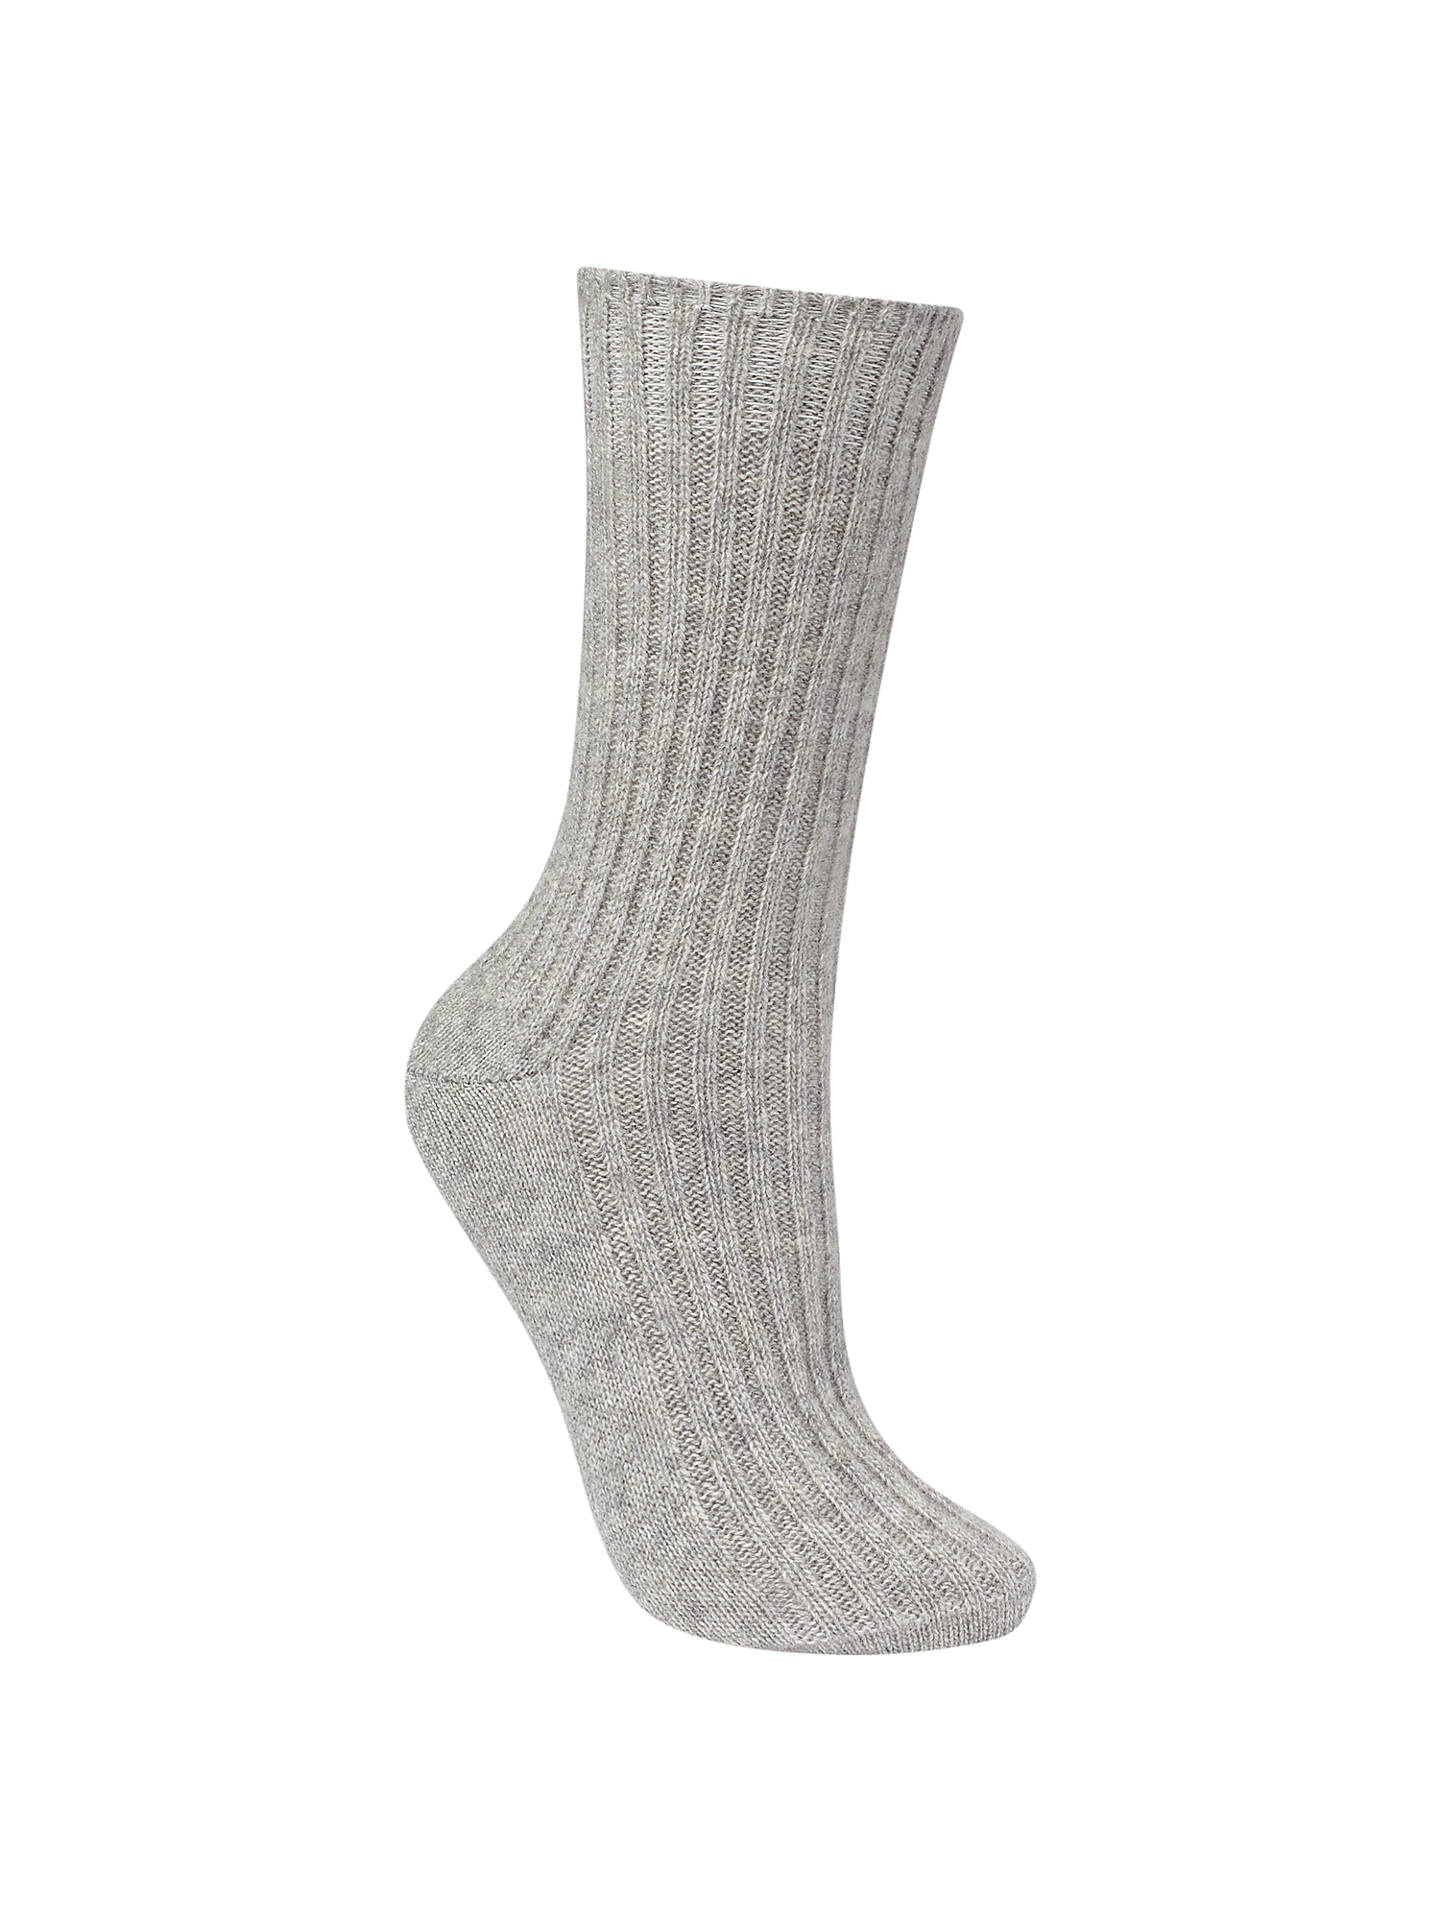 BuyJohn Lewis Cashmere Bed Socks, One Size, Grey Online at johnlewis.com